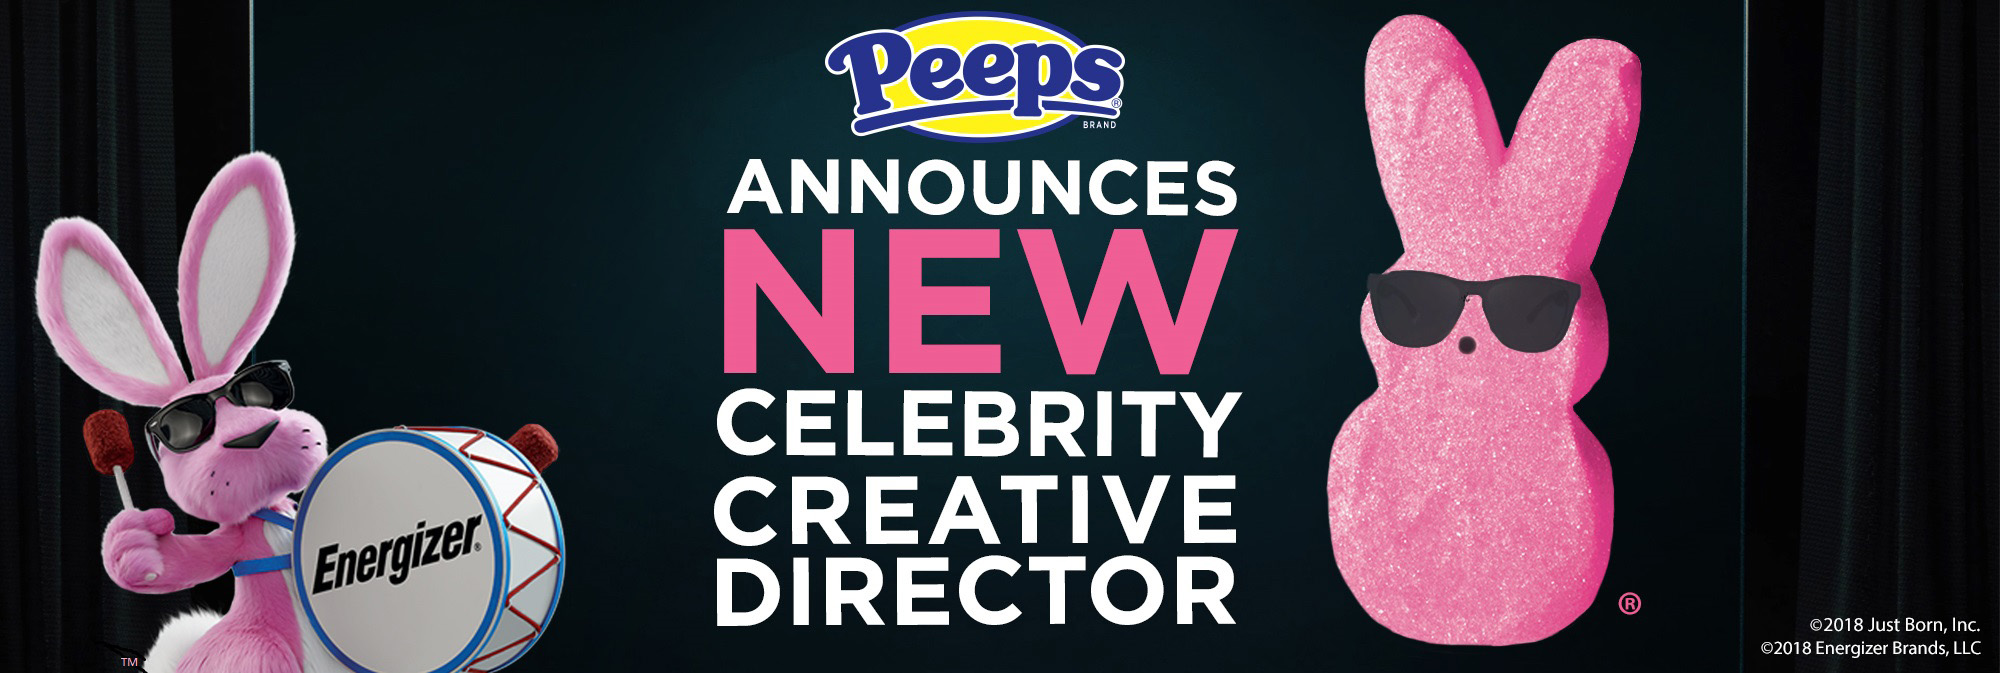 Header image stating: Peeps Announces New Celebrity Creative Director. The Energizer bunny is to the left and a pink peep with black sunglasses to the right.